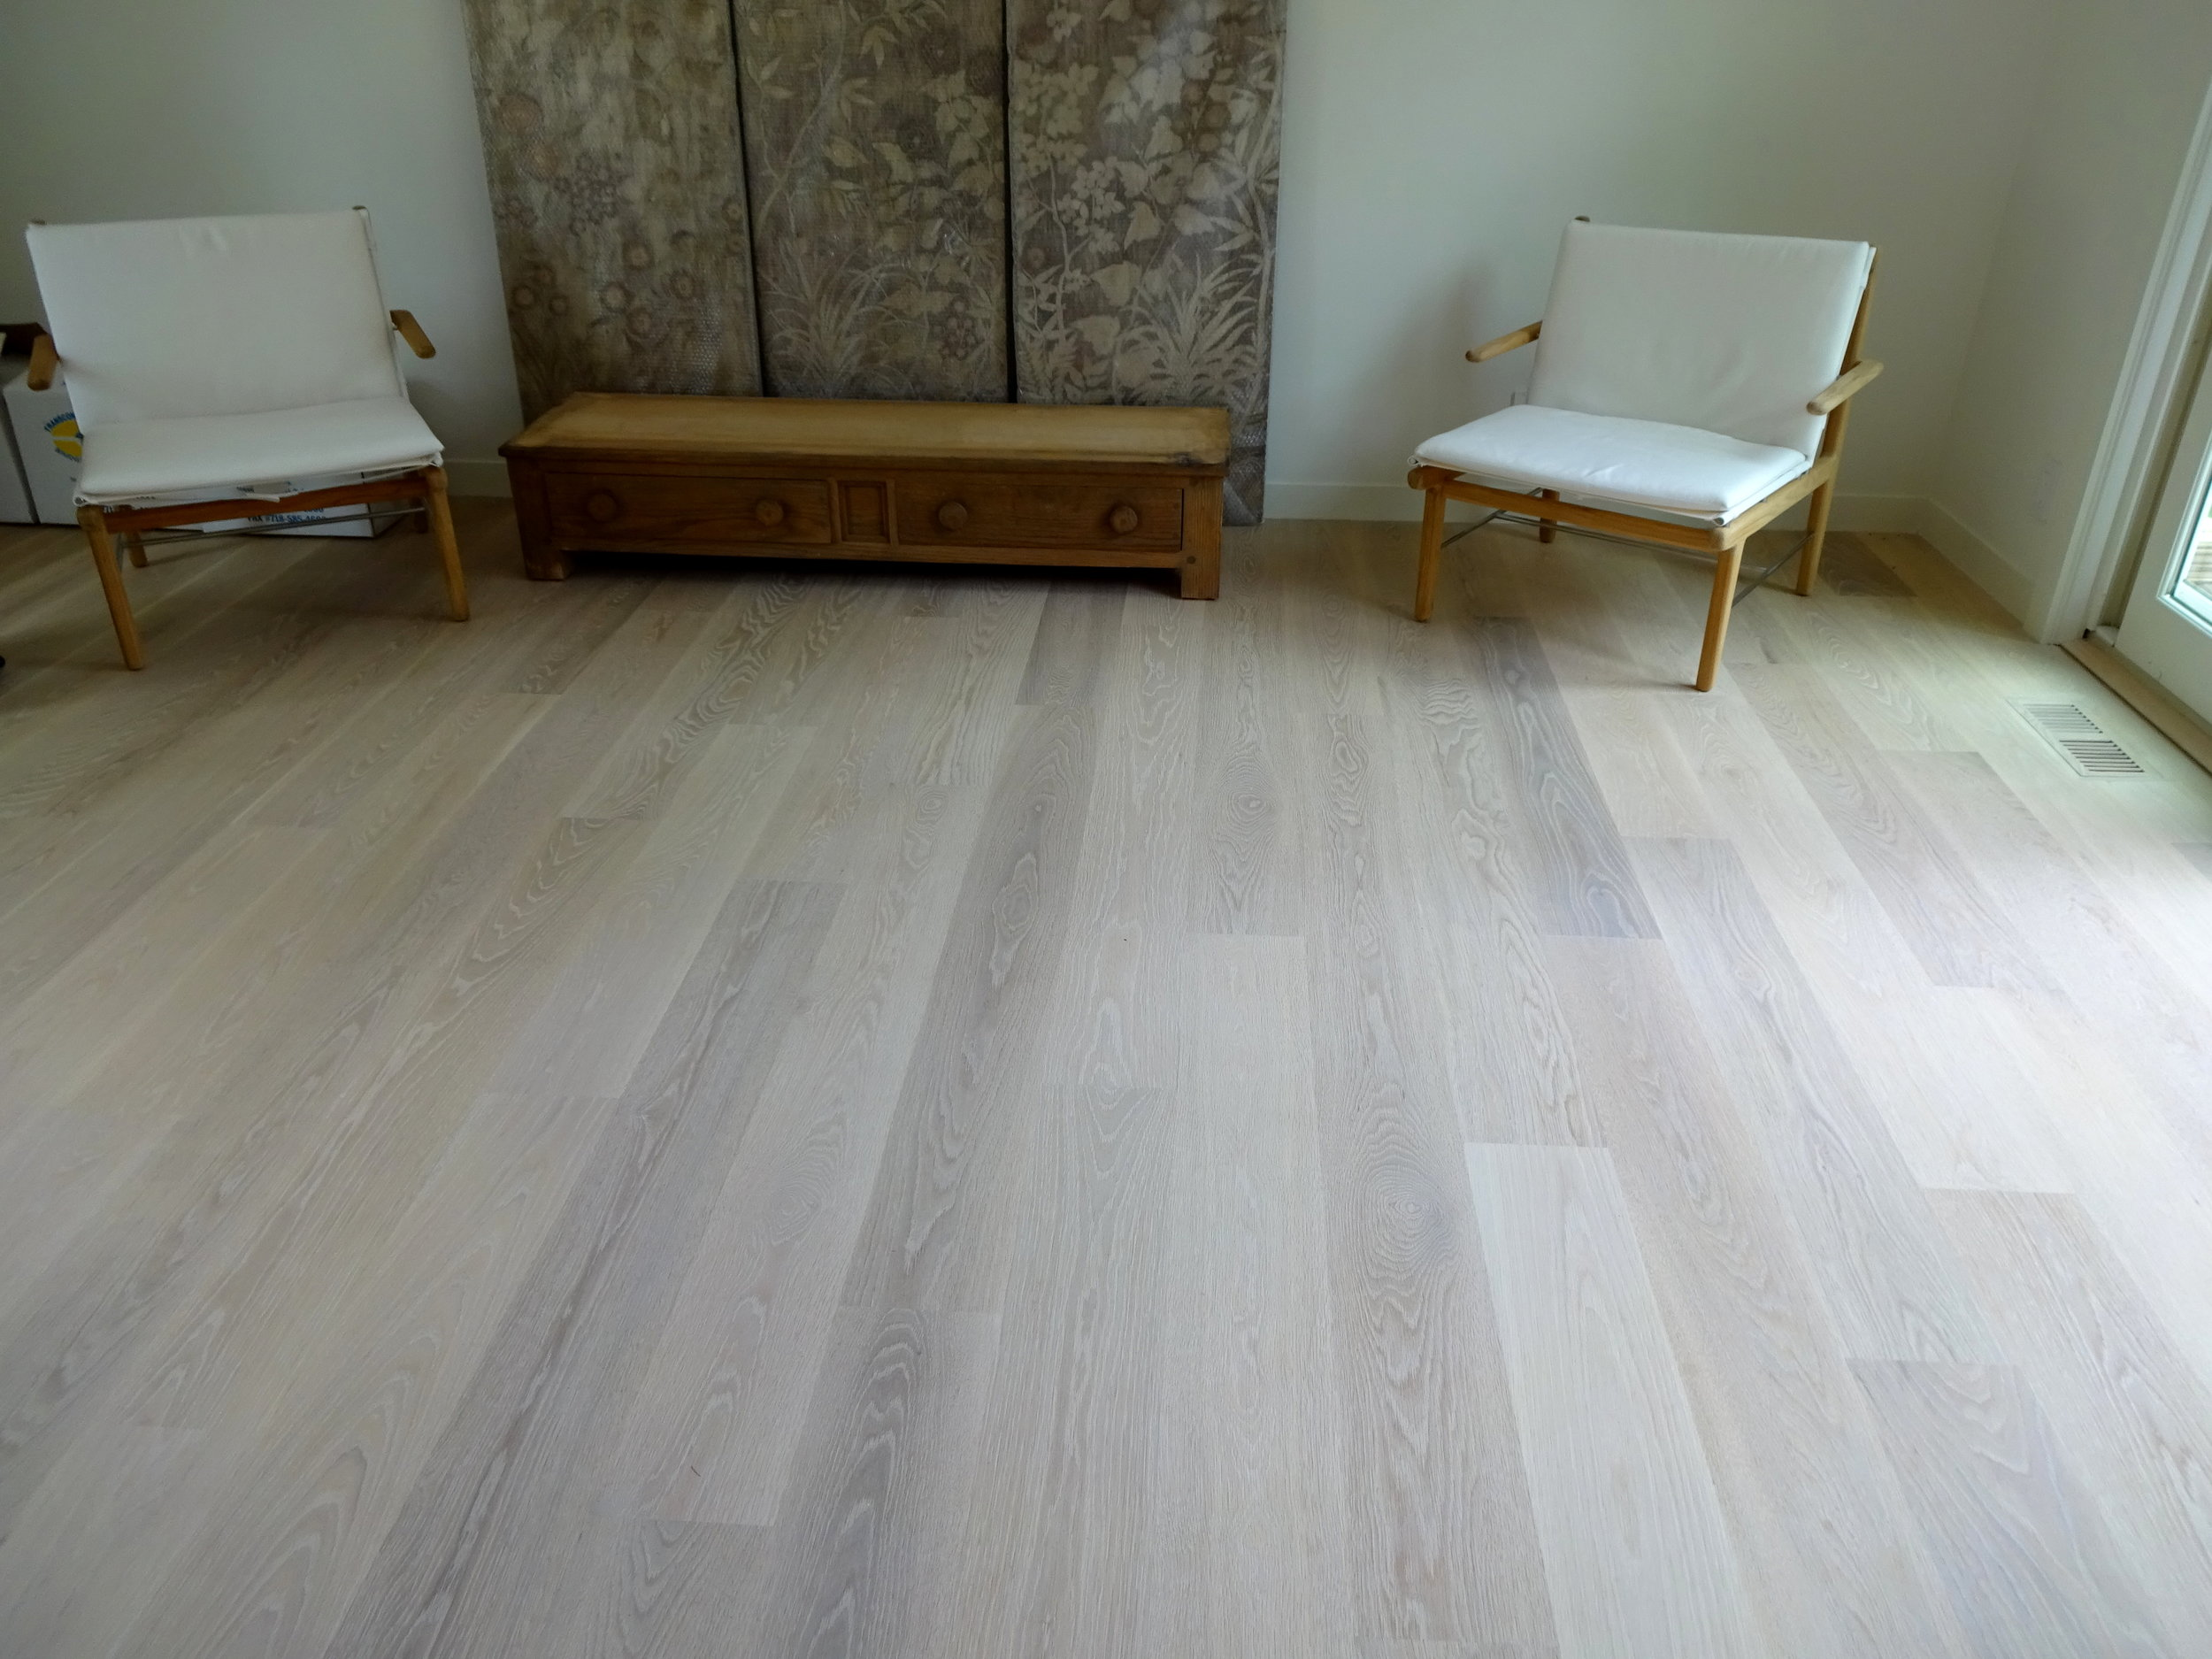 """7"""" Engineered White Oak Hardwood flooring that we installed & finished with Woca penetrating oils in Amagansett, NY in 2016. This picture was taken more than a year later and look! There is hardly any separation in the floor."""